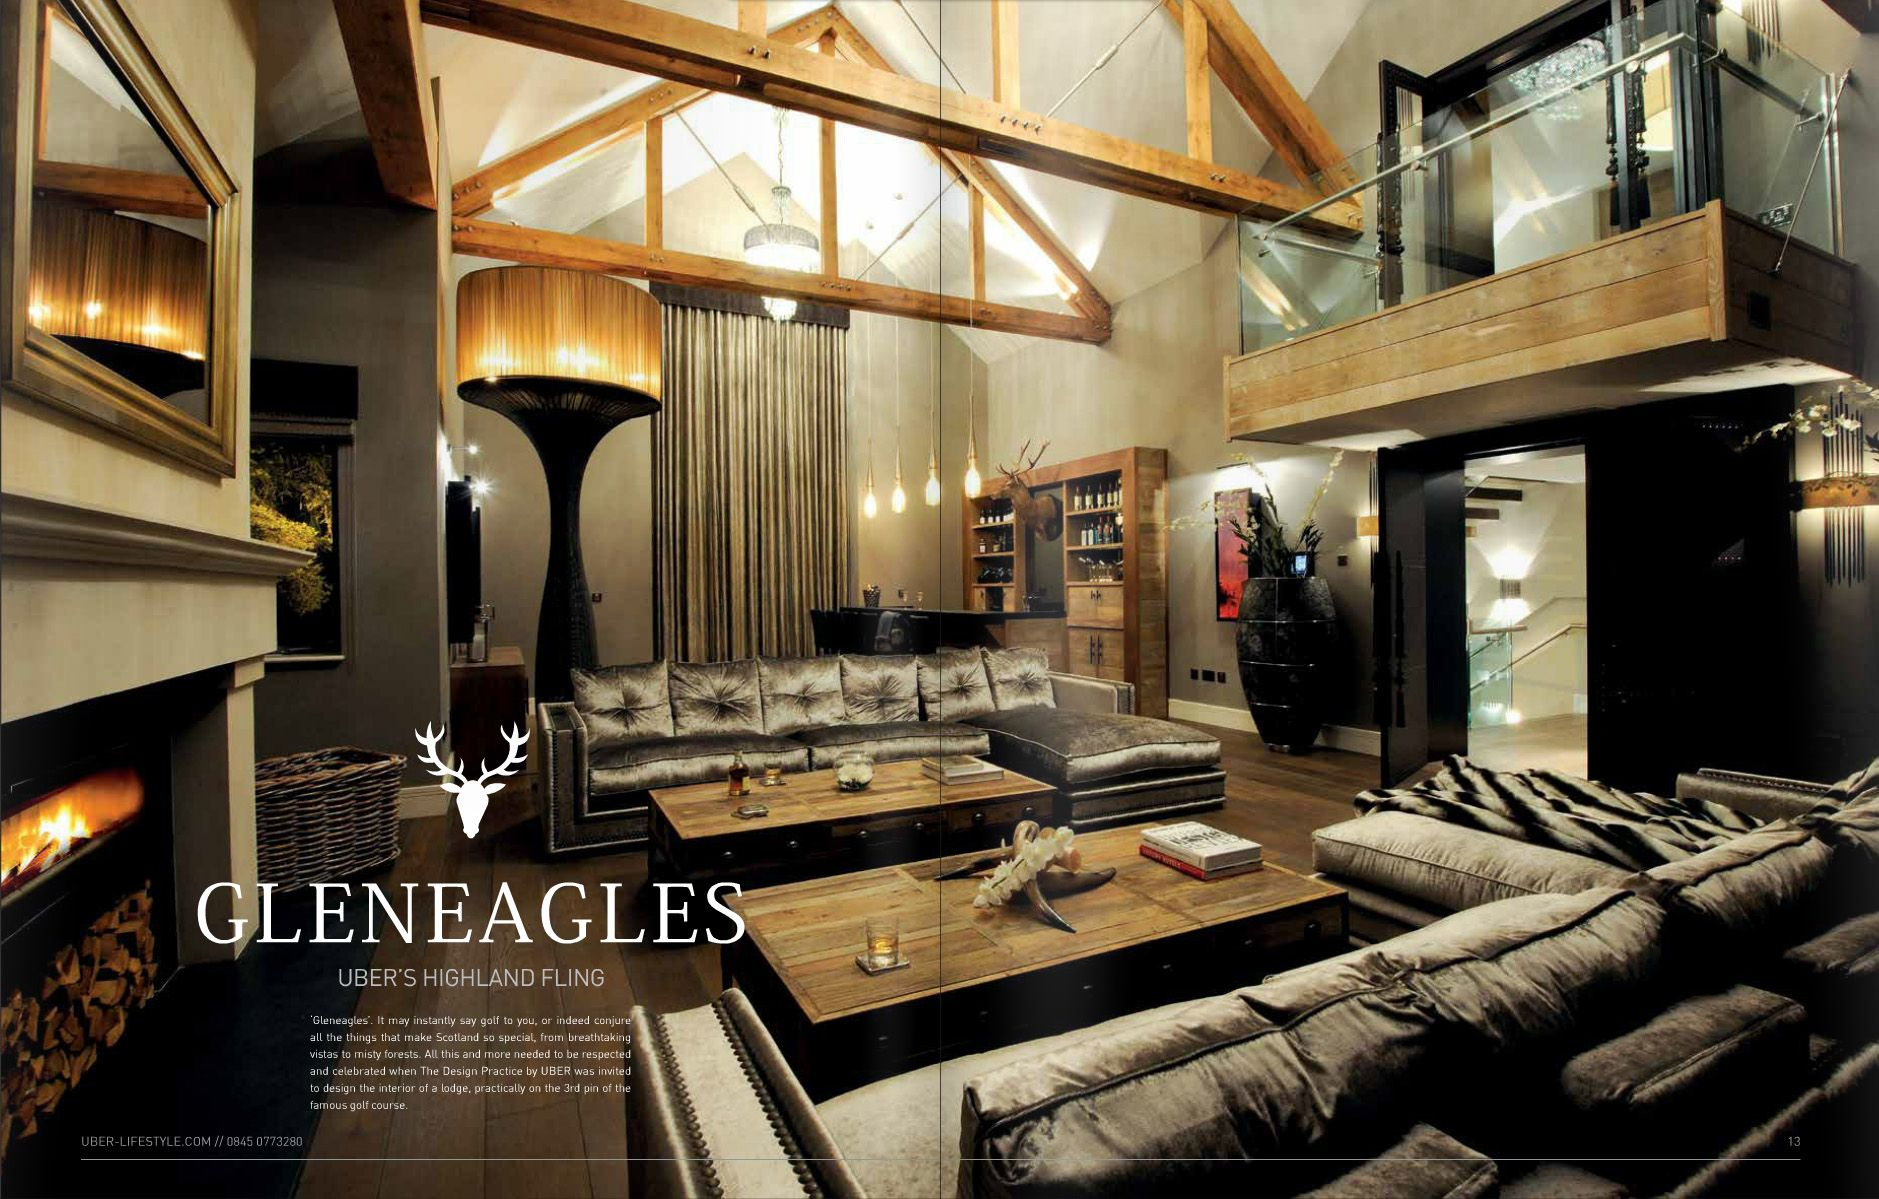 Story Of Our Contemporary Lodge In Gleneagles By The Design Practice By UBER